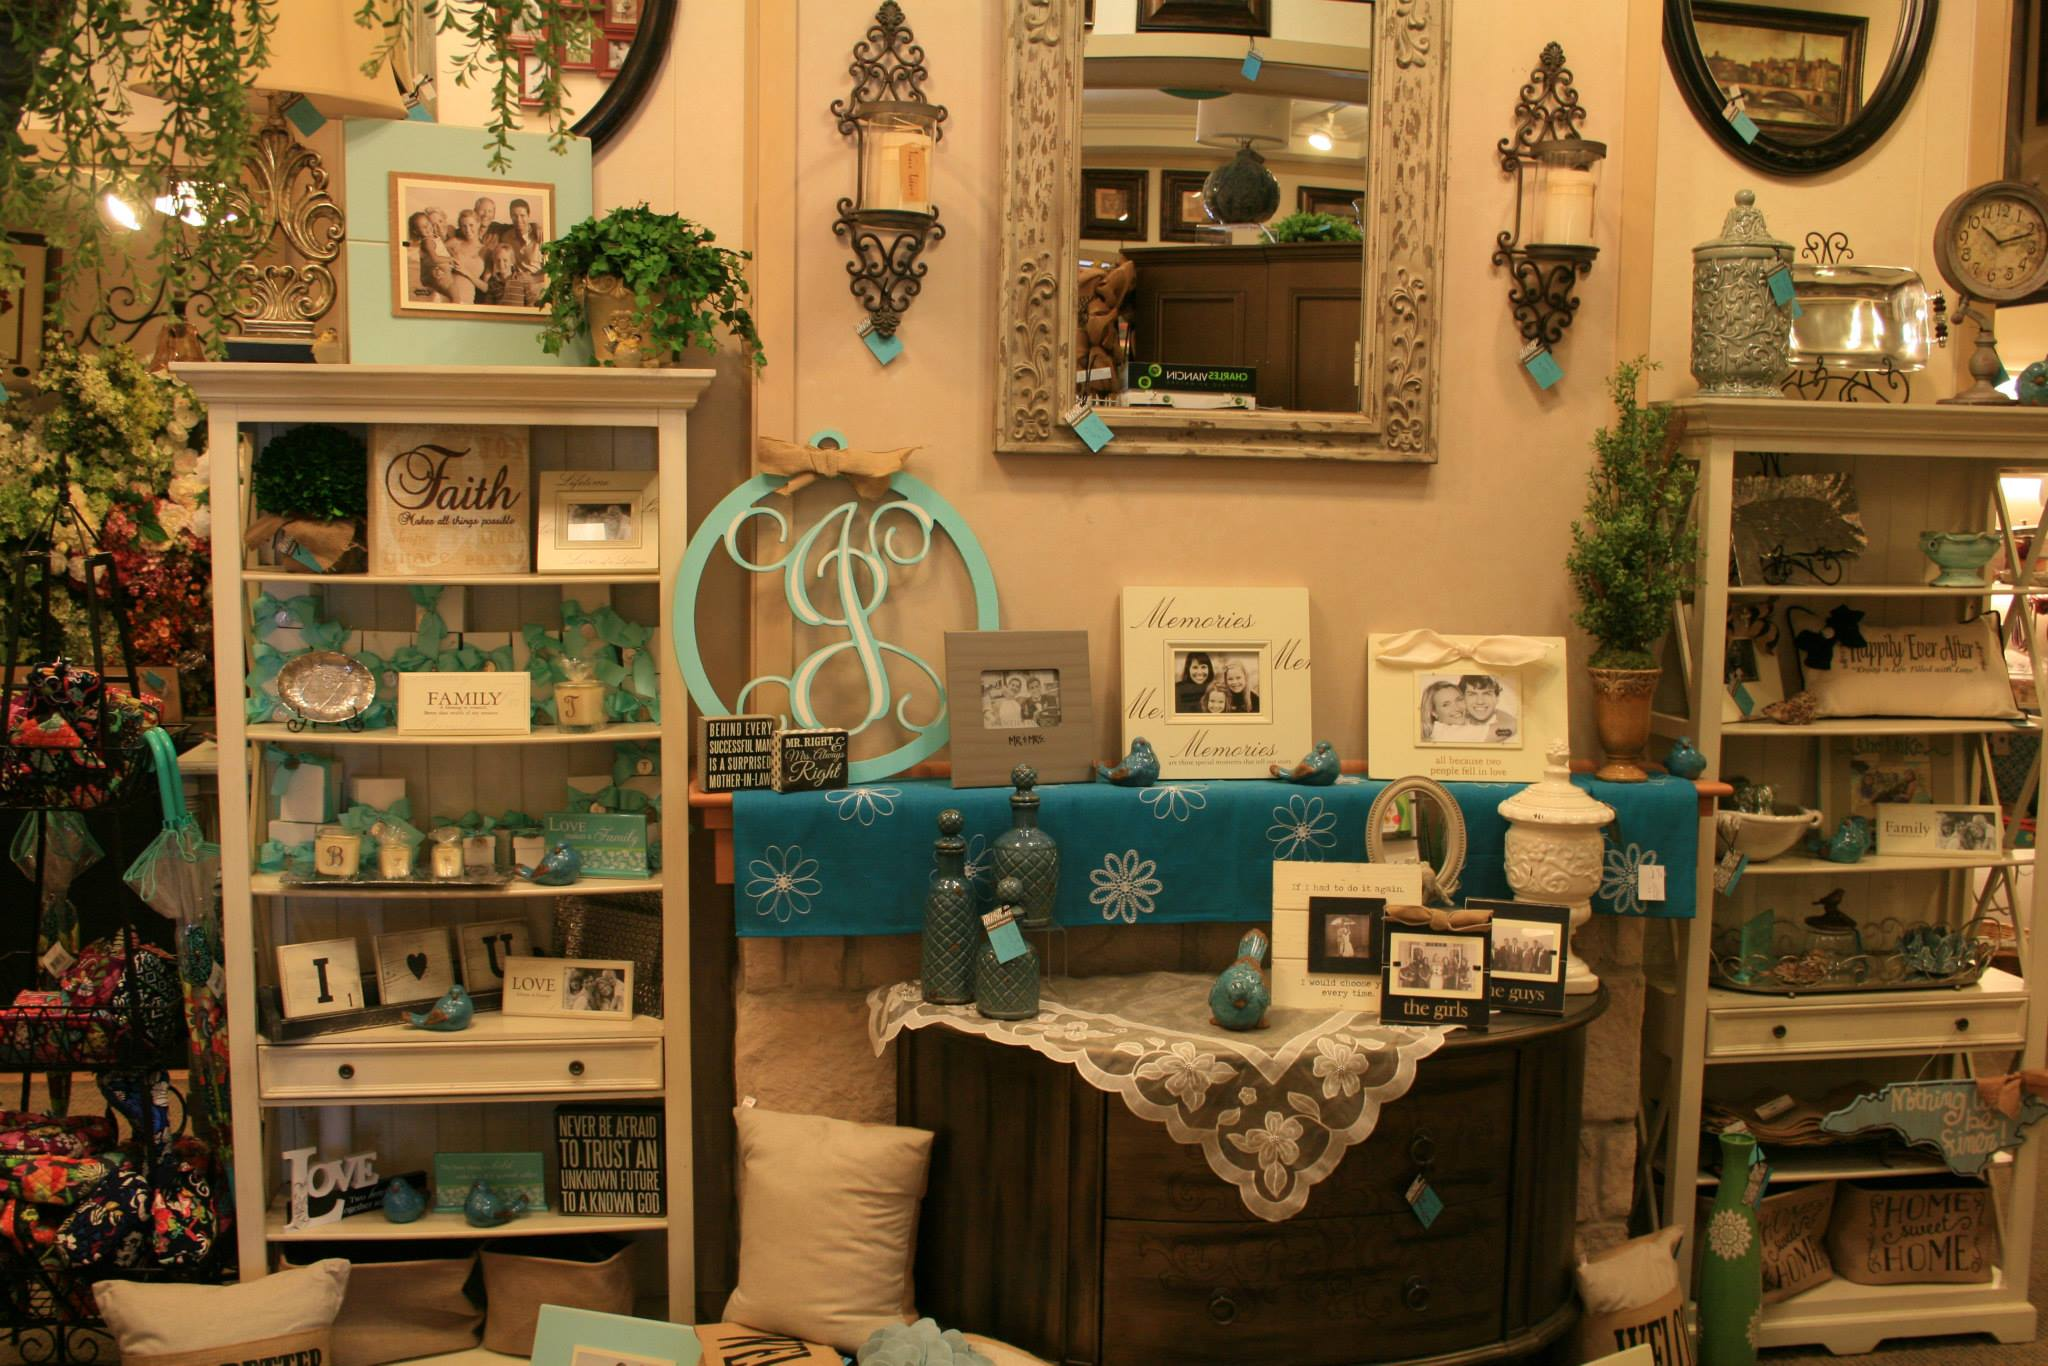 Home decor stores in charlotte nc shop local charlotte - Home decor stores in charlotte nc image ...